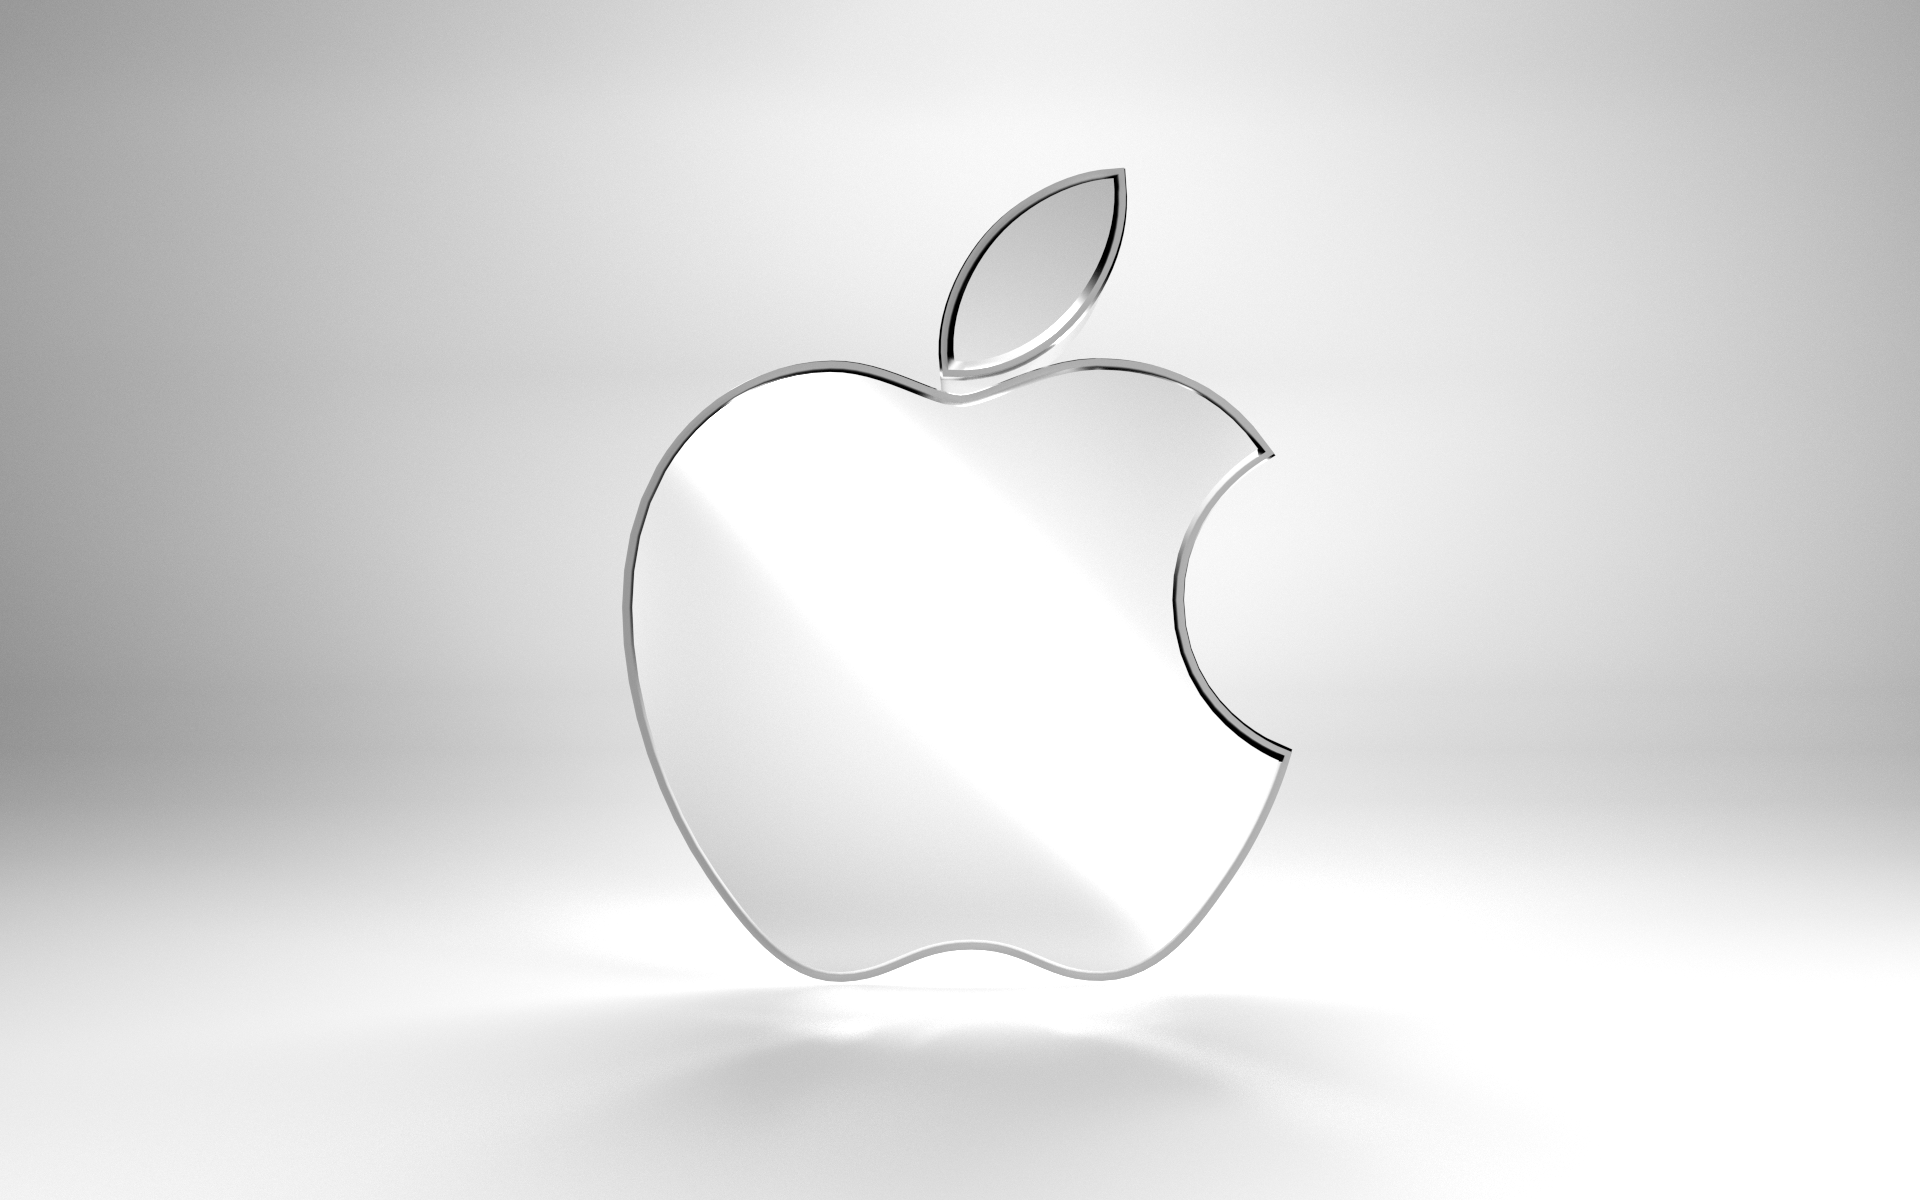 Apple - Famous Logos in the World